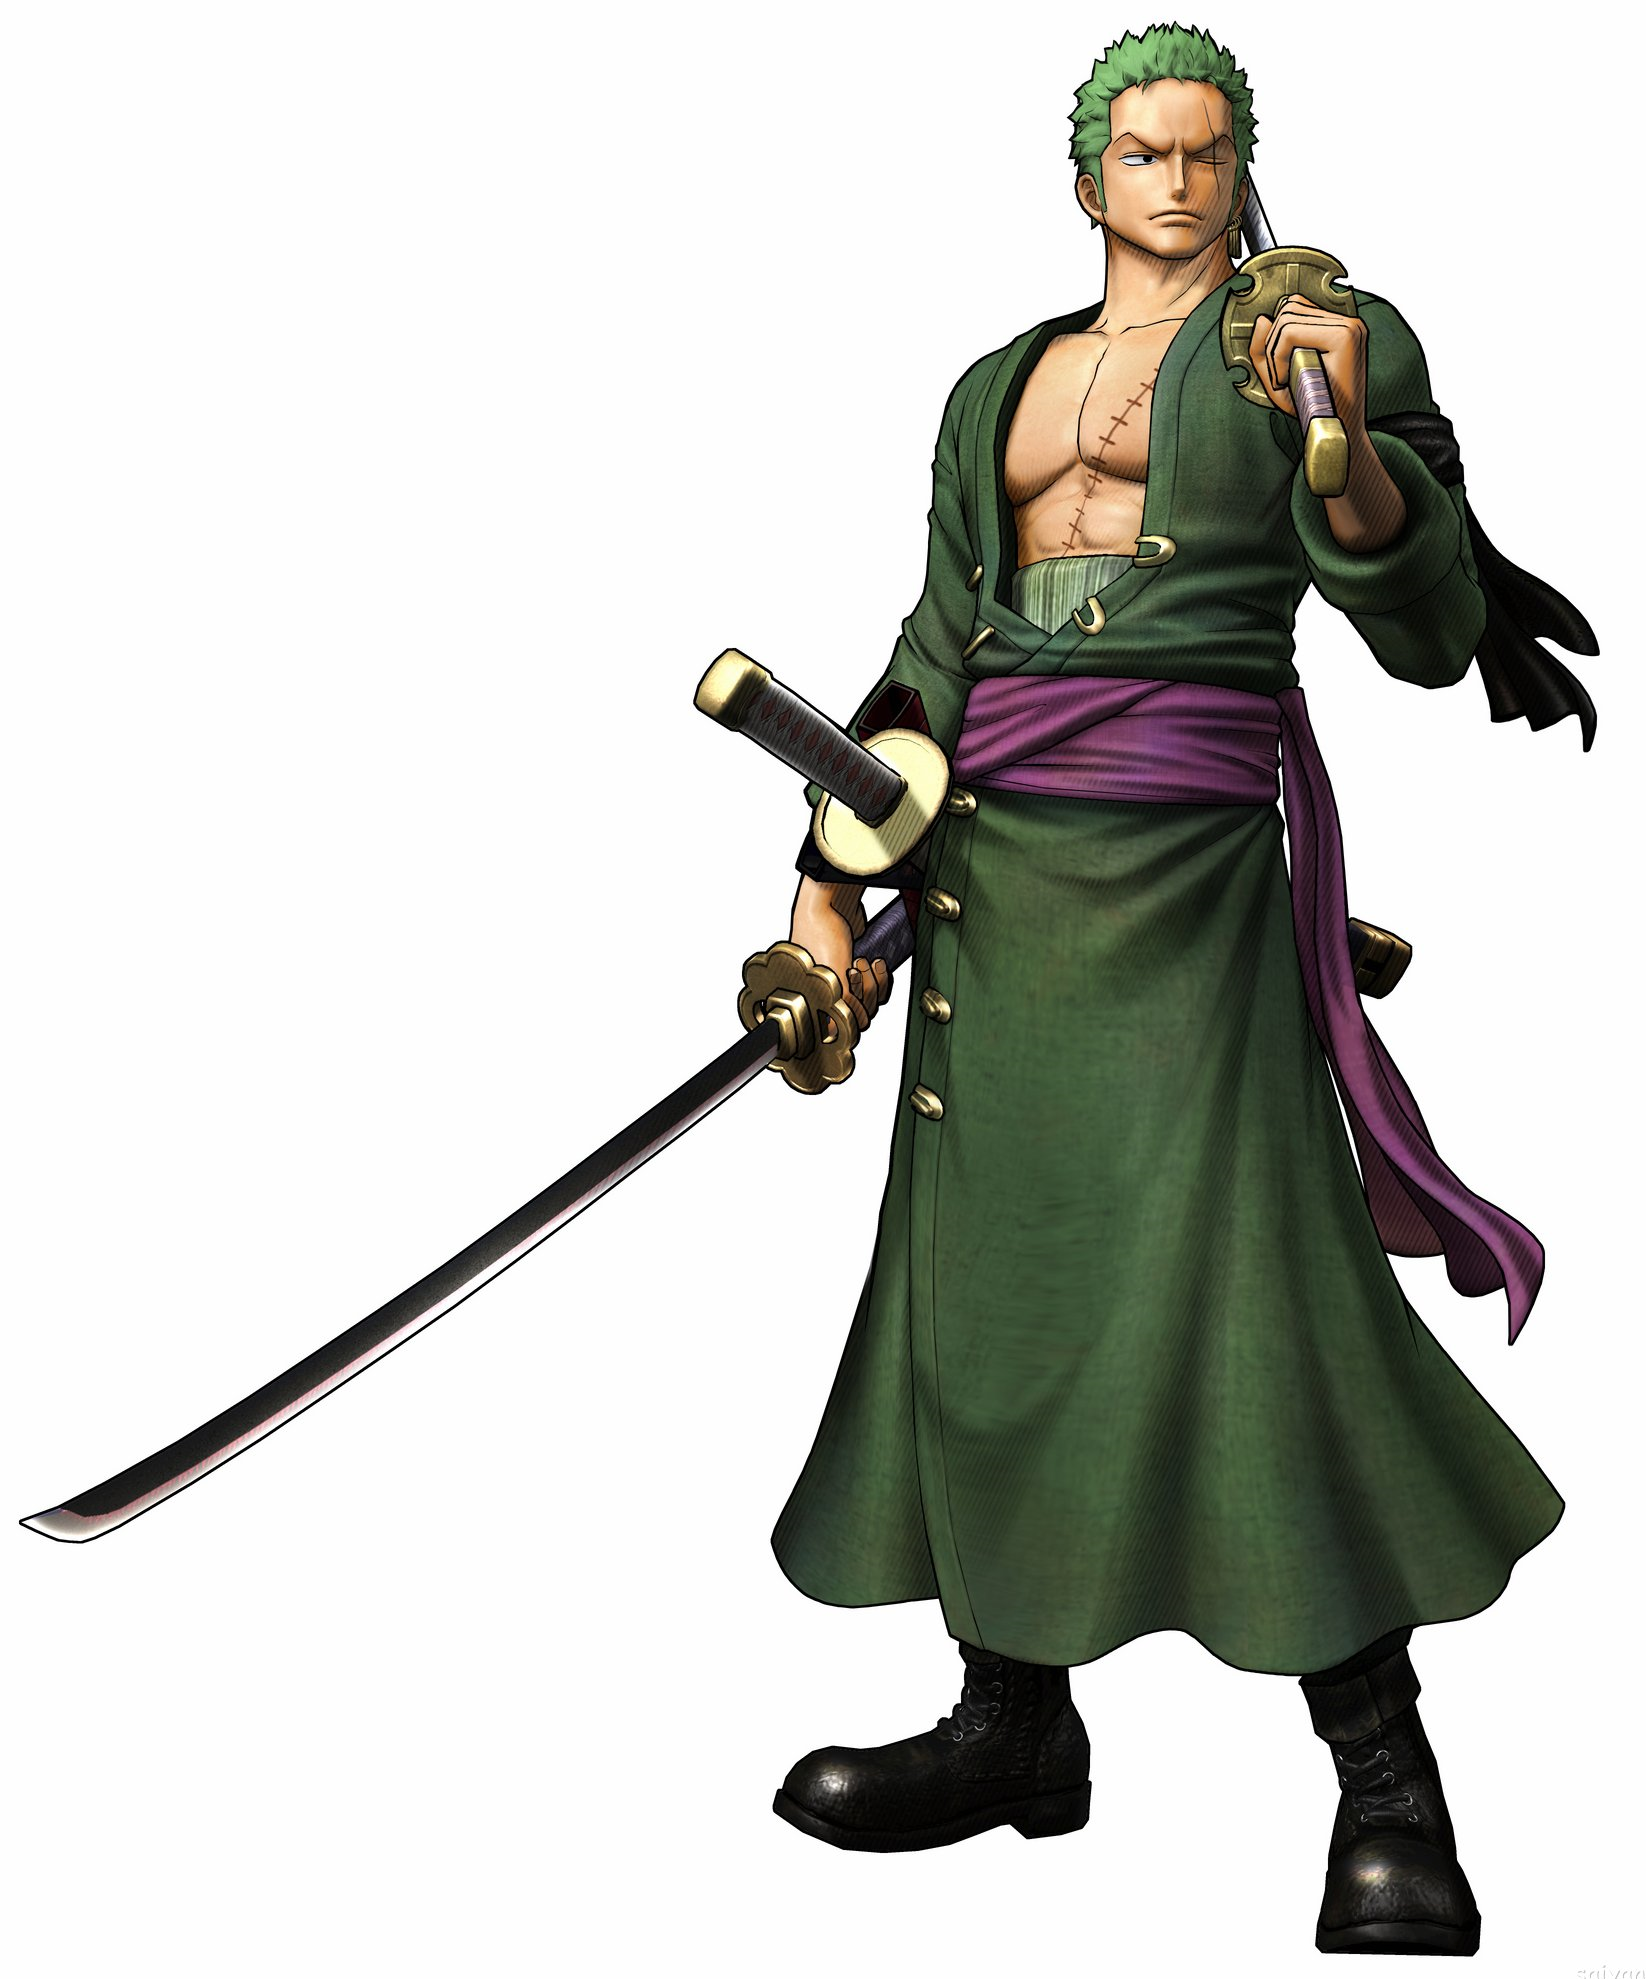 Marco Pirate Warriors 3: Zoro Pirate Warriors 3.png